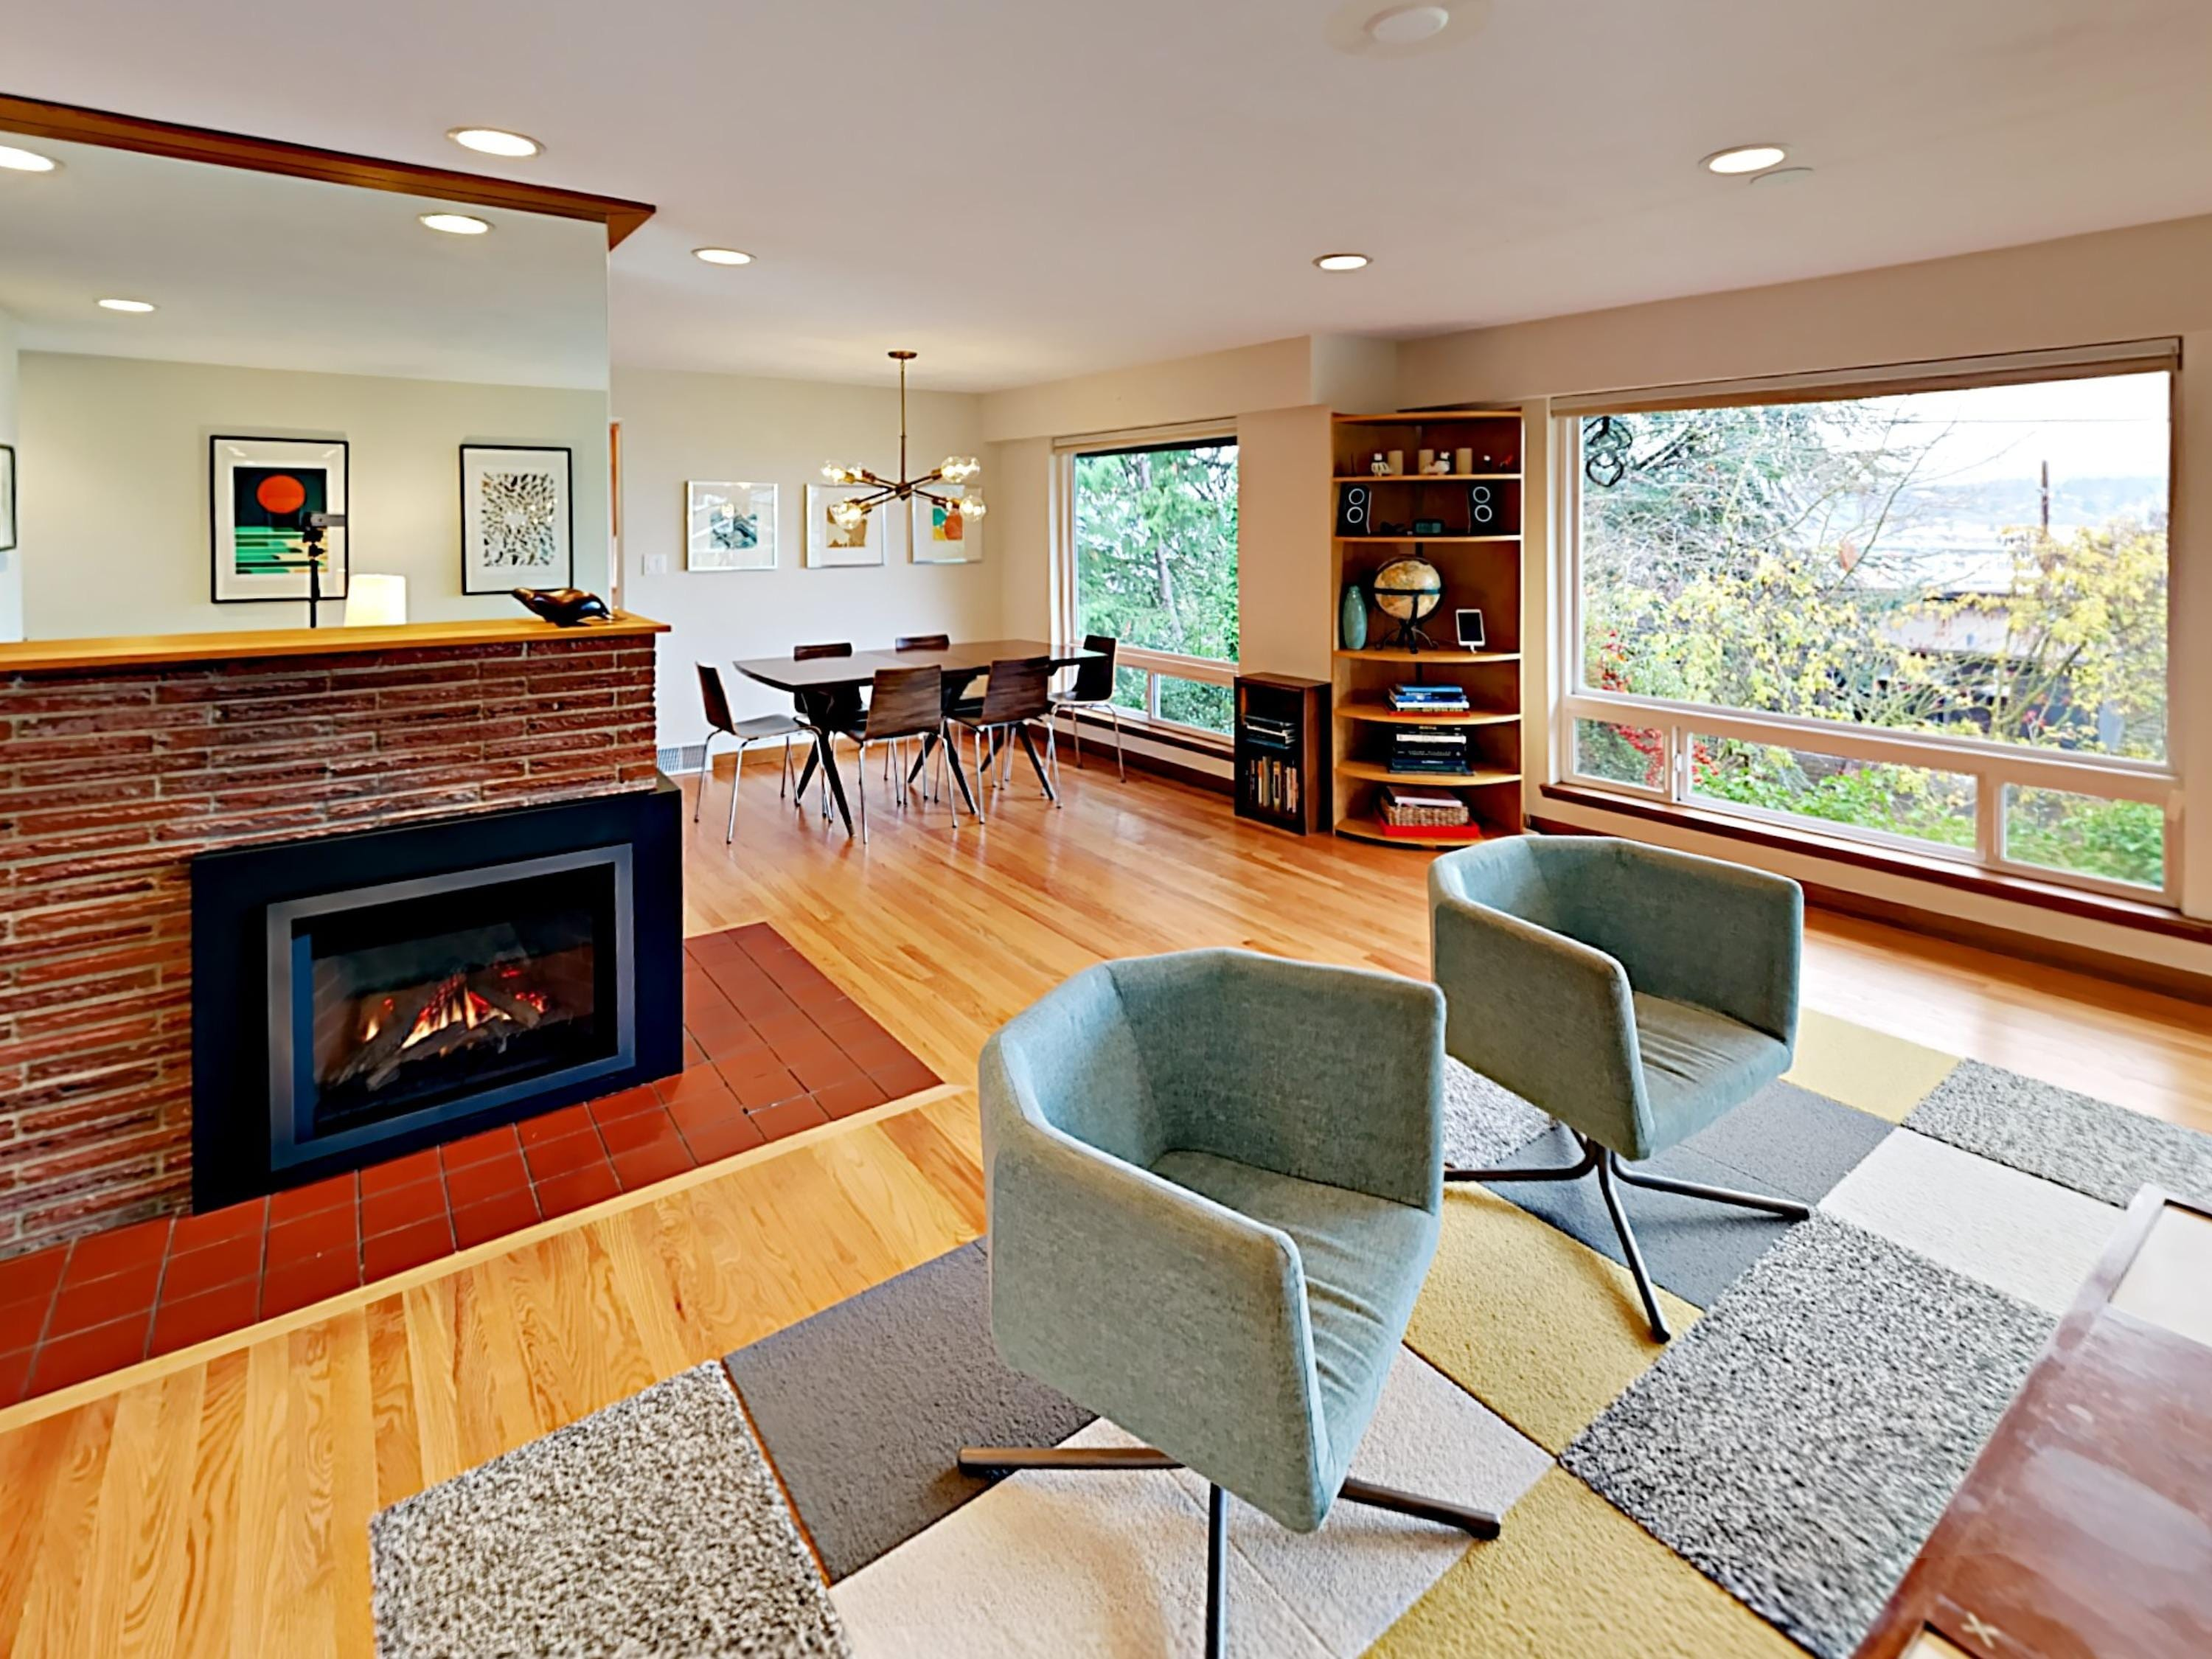 Welcome to Seattle! Your rental is professionally managed by TurnKey Vacation Rentals.